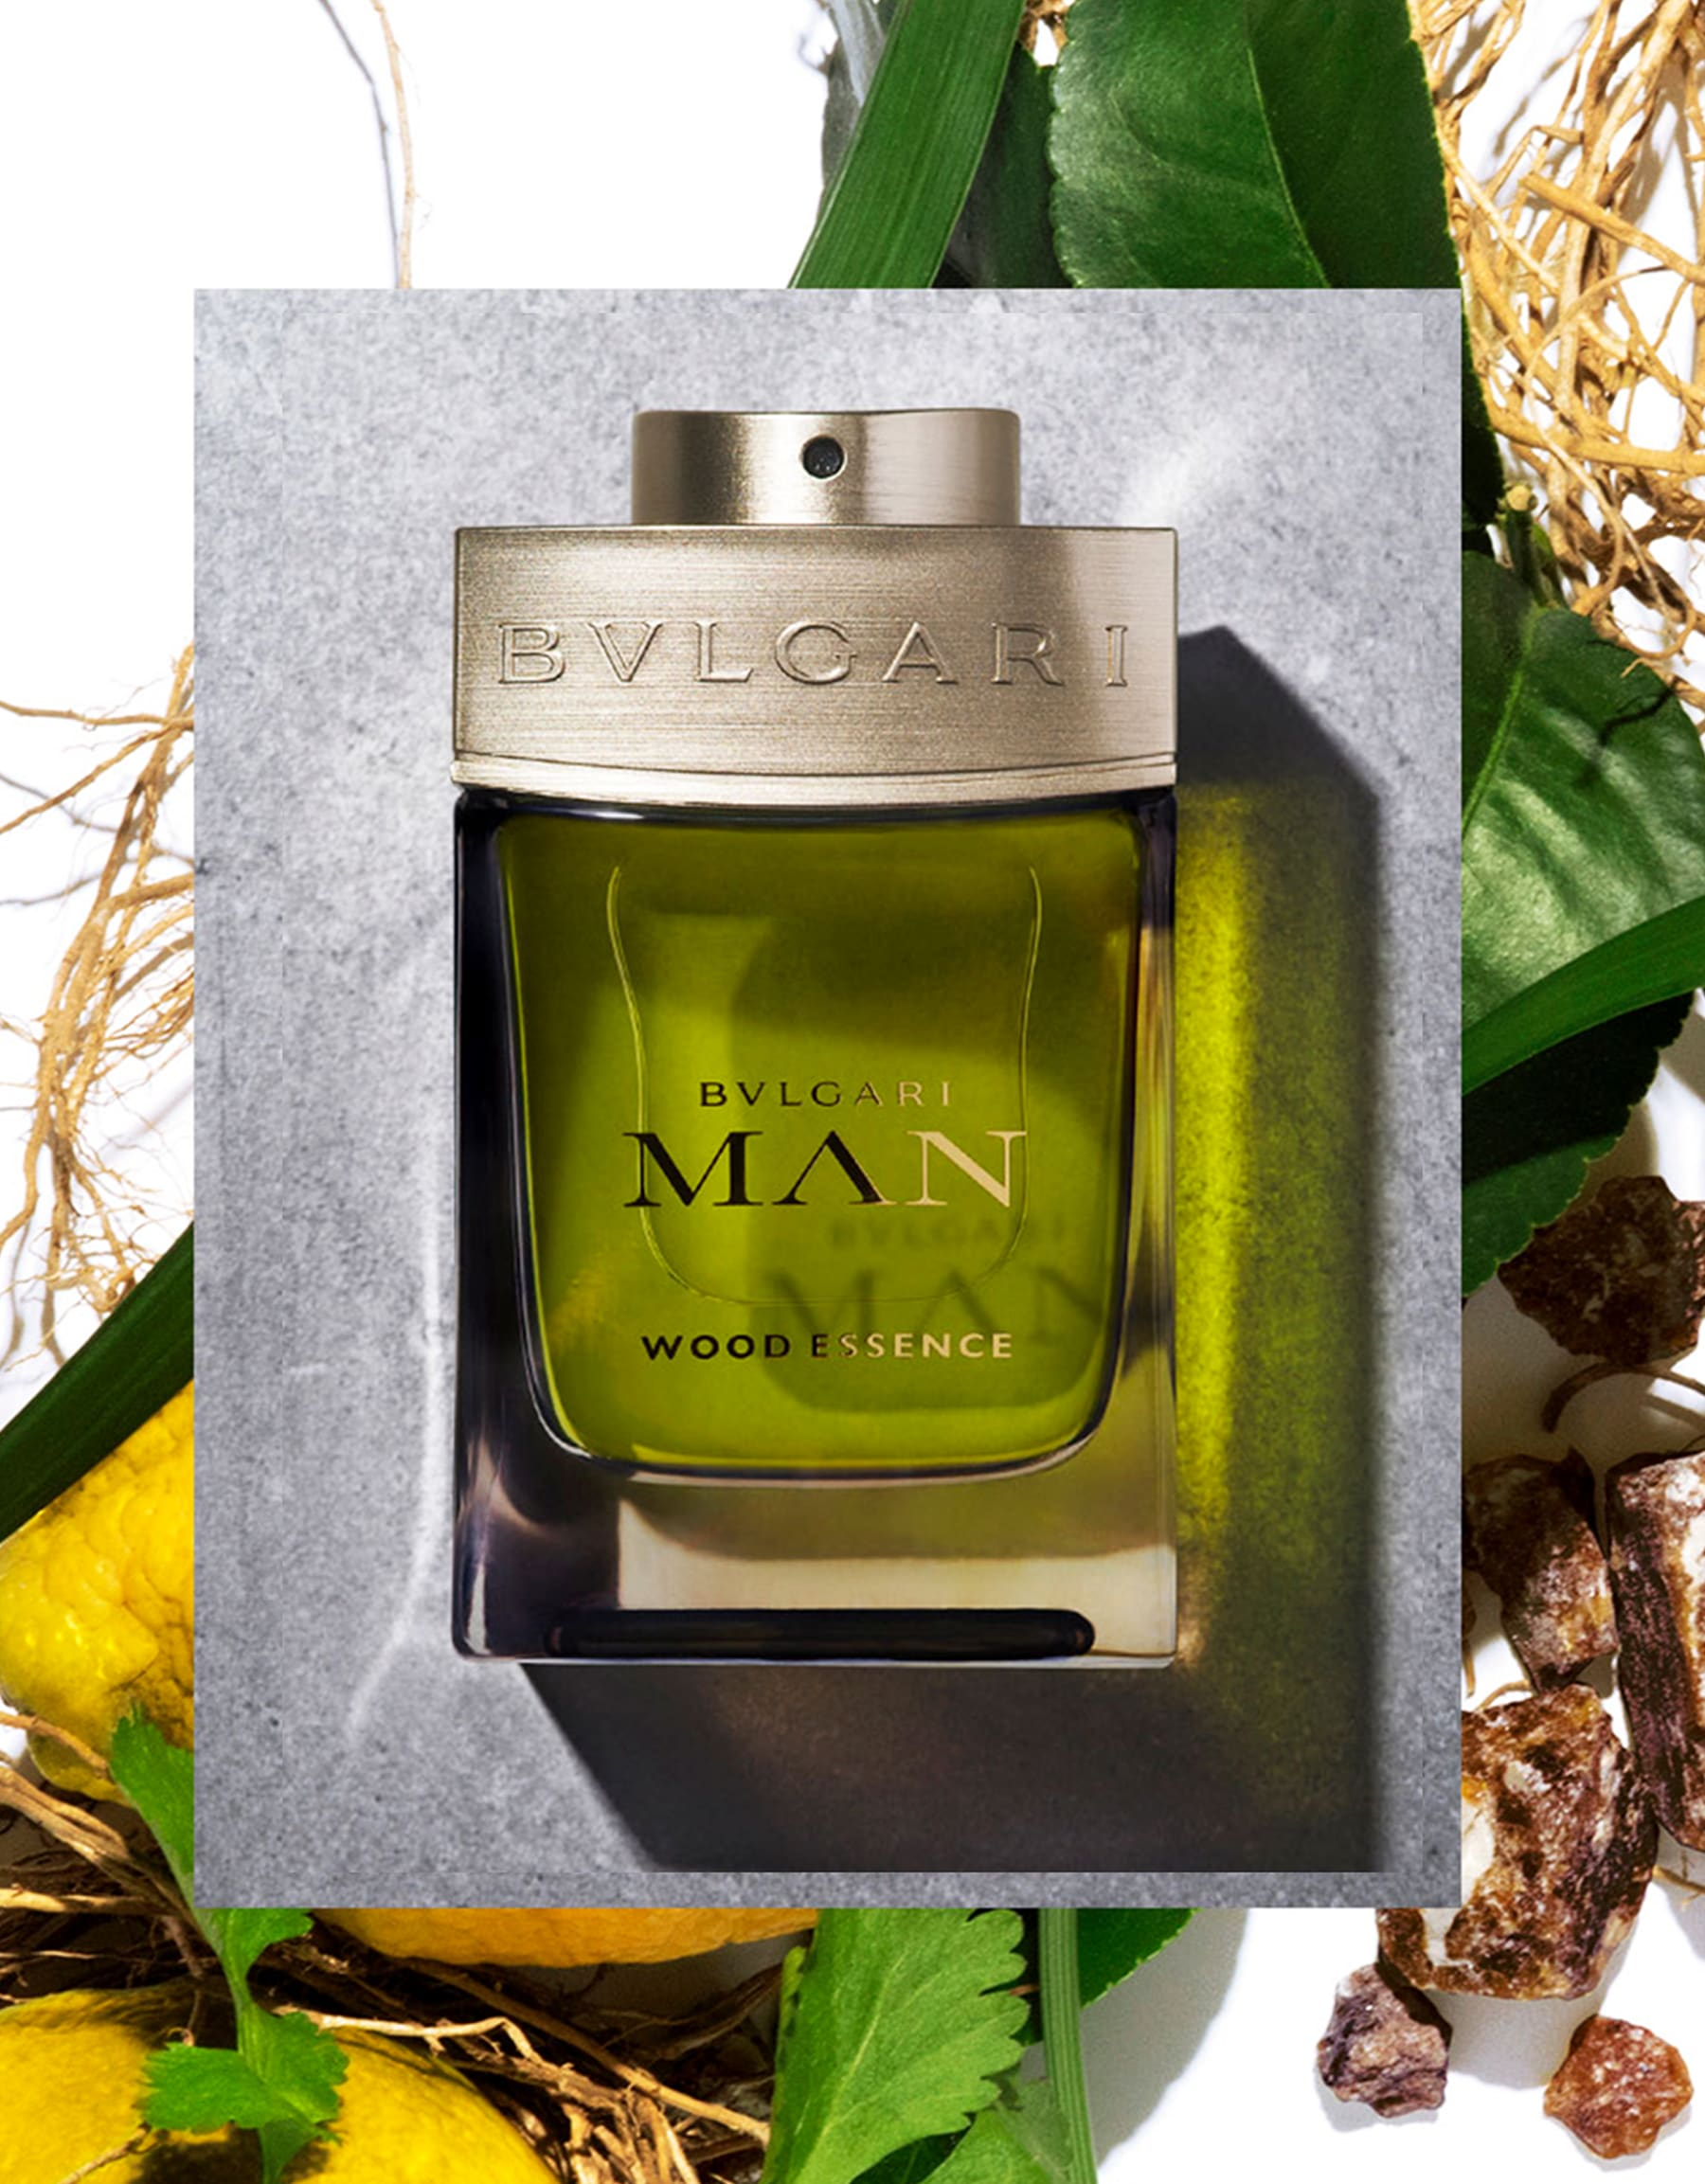 An energizing woody eau de parfume inspired by the life force found in nature. 46100 image 3